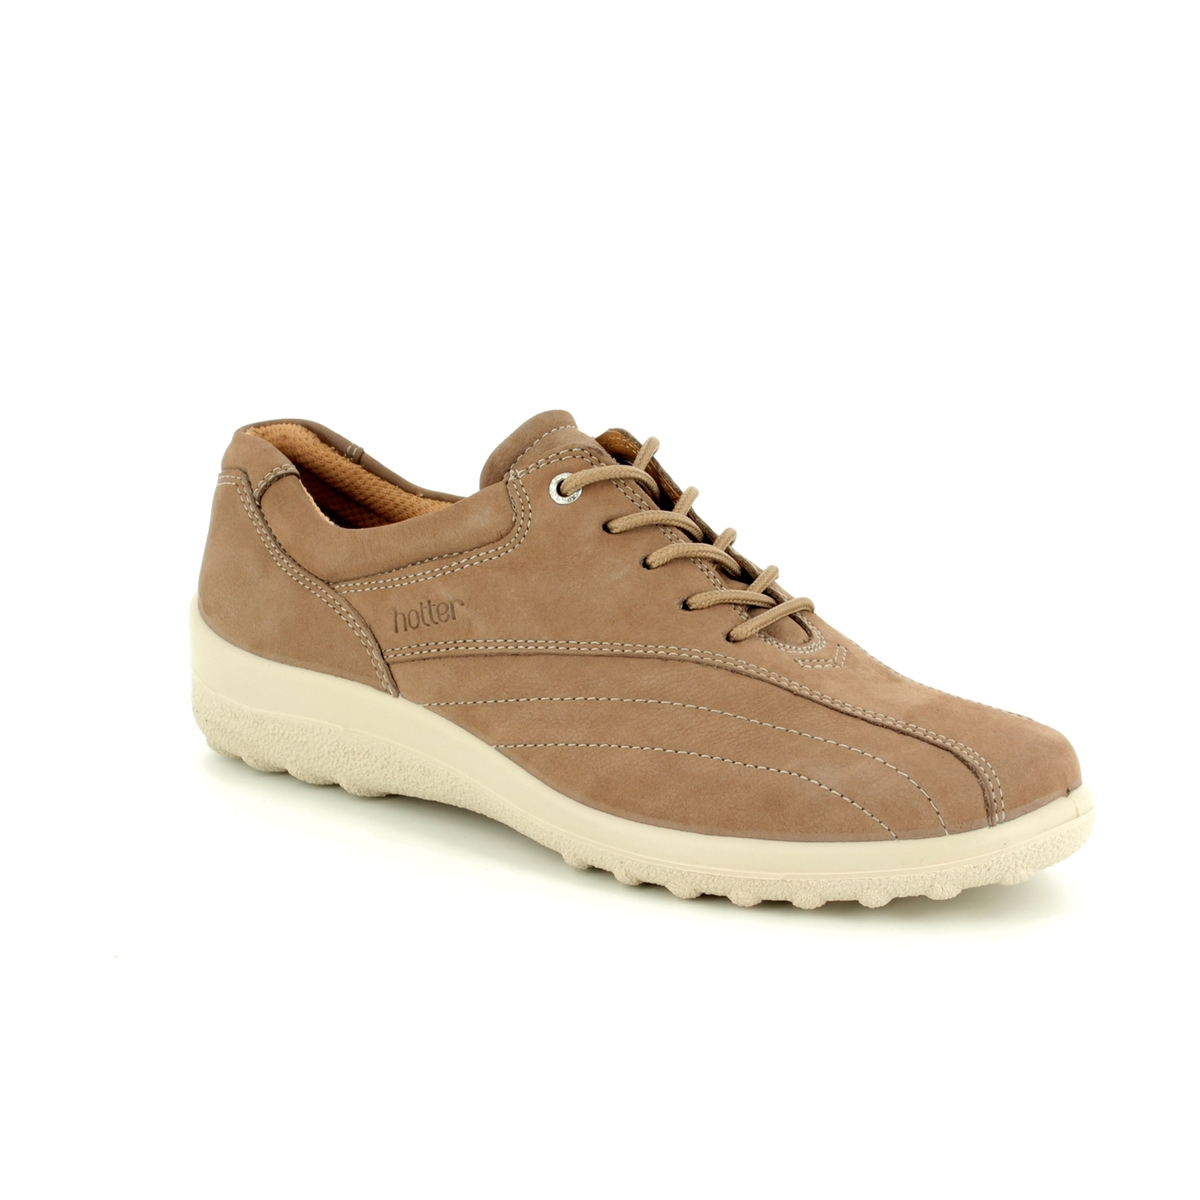 Hotter Shoes Womens Shoes New Arrivals